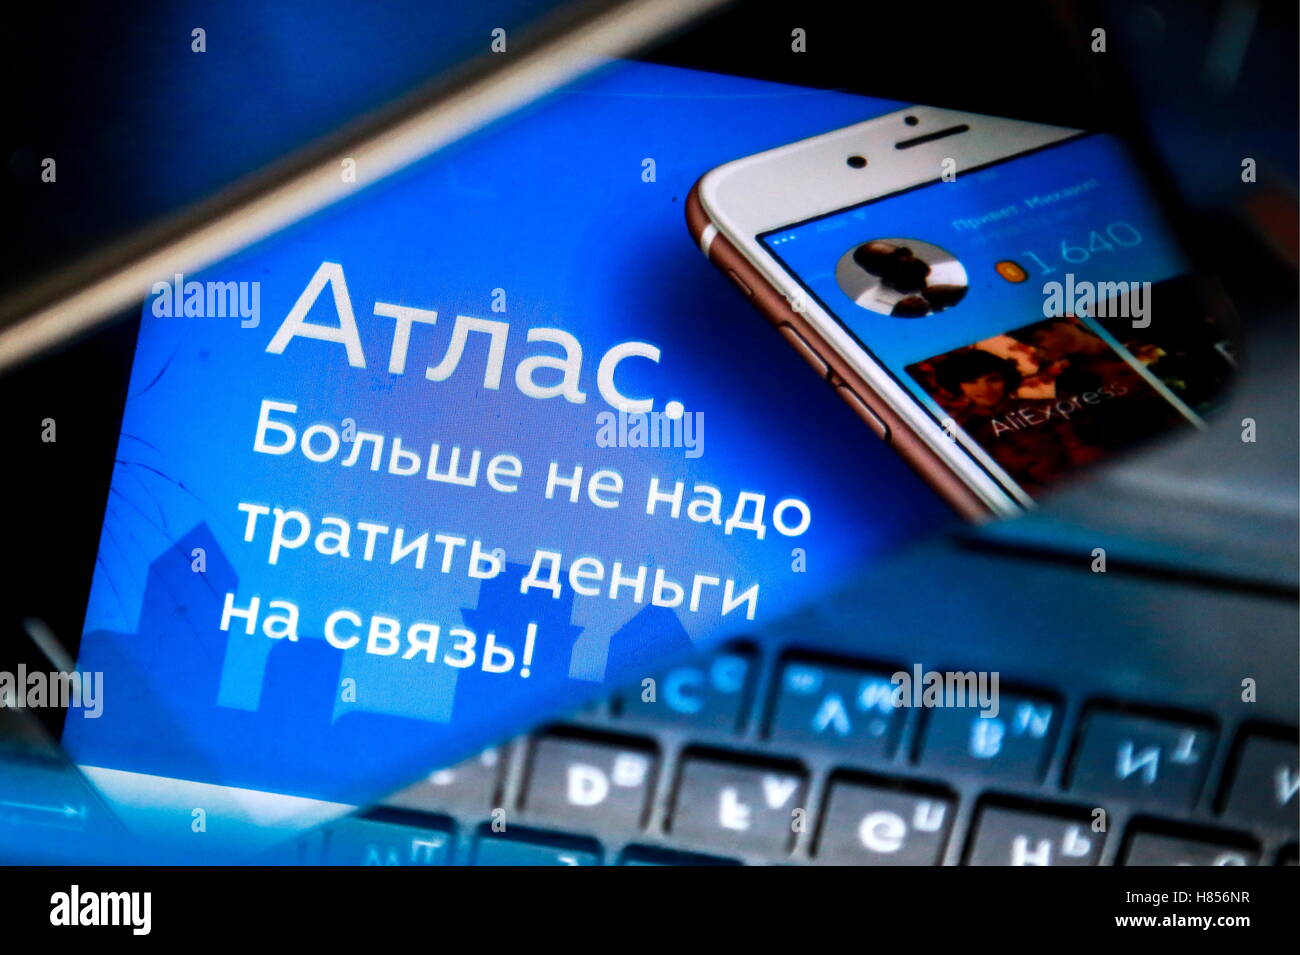 St Petersburg, Russia. 10th Nov, 2016. The Atlas application launched on a smartphone. The Atlas mobile network - Stock Image